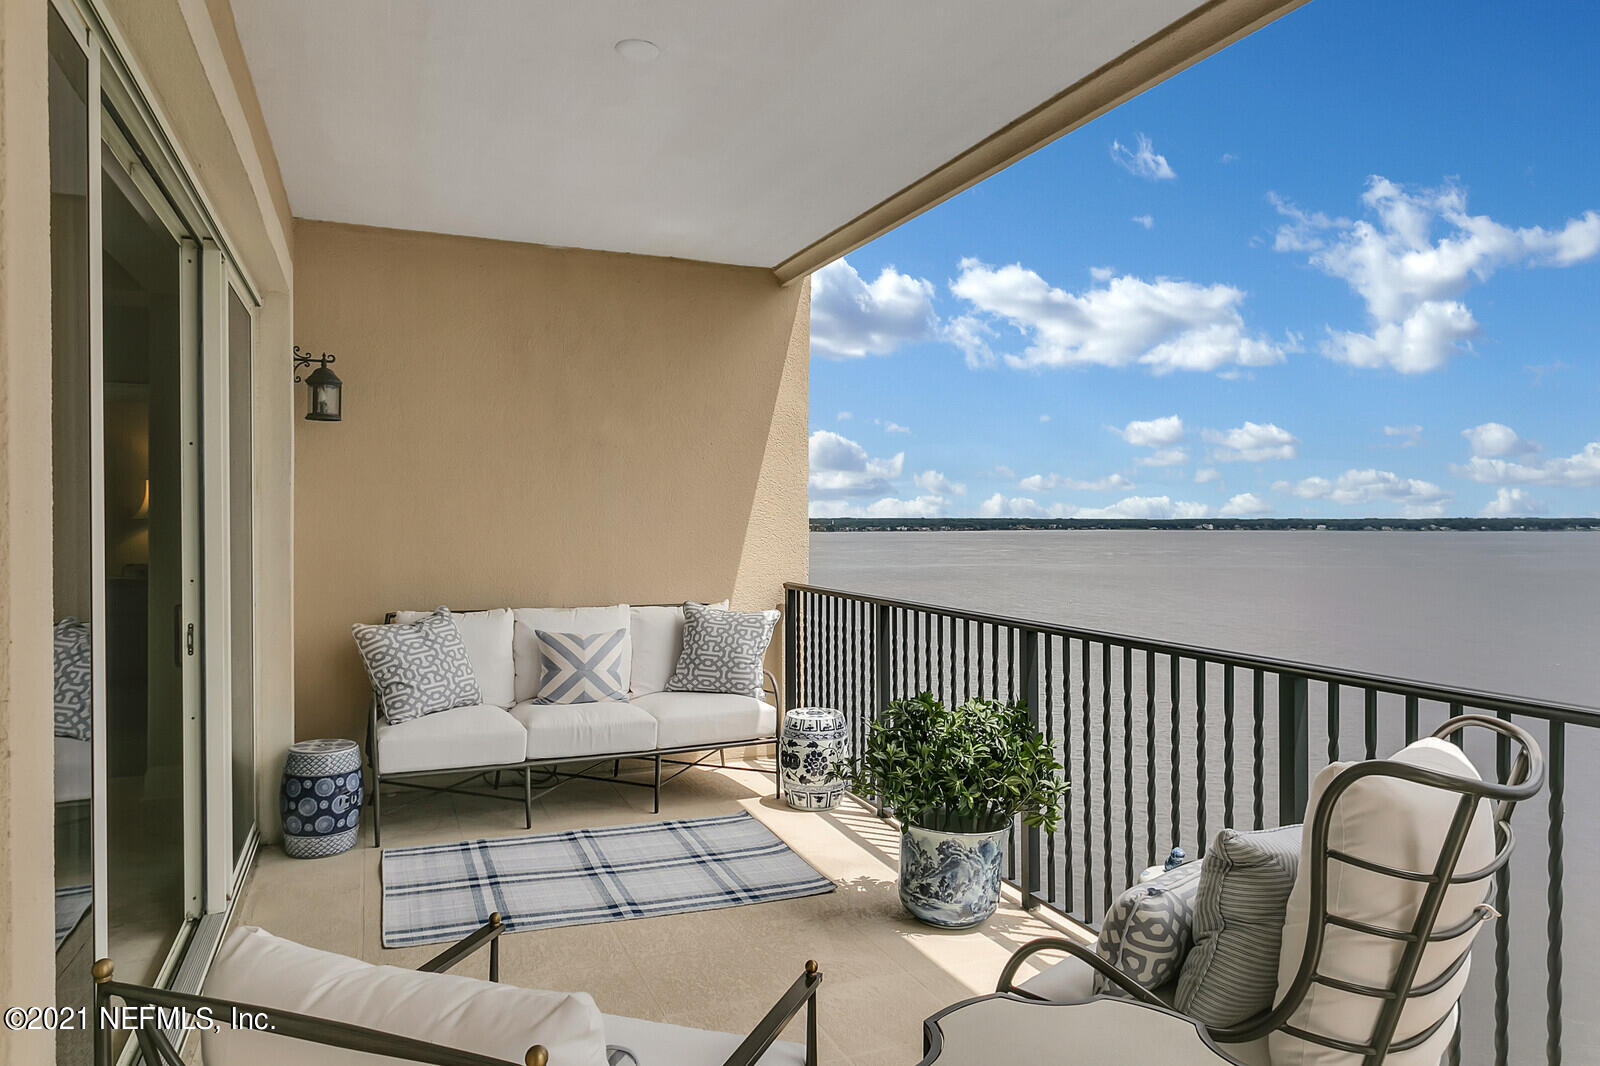 Looking for the perfect birds eye panoramic view of the St Johns River, settle in on the 10th floor for spectacular sunrises and sunsets on your spacious private terrace. Open floor plan from kitchen to family room with great views. Kitchen has upgraded GE Appliances including double ovens, natrual gas cook top, side by side refrig. and center island with granite counters, . Family room has a gas fireplace for  cozy cooler weather . Main living spaces have travertine flooring and all other rooms have brand new seagrass carpeting. Entire unit freshly painted and all new lighting fixtures. 9''8''' ceilings , Owners suite has water view, huge his and her closest and large en suite bath.  Each bedroom has it's own bath. A rare two car garage comes with this unit. Tons of closets and two storag closets . The amenities include a beautiful lap pool on the river, massage room, fitness center, guest suite and elegant lounge room overlooking pool with bar for personal entertaining. Very private and secure with gate and multiple codes for entrance.